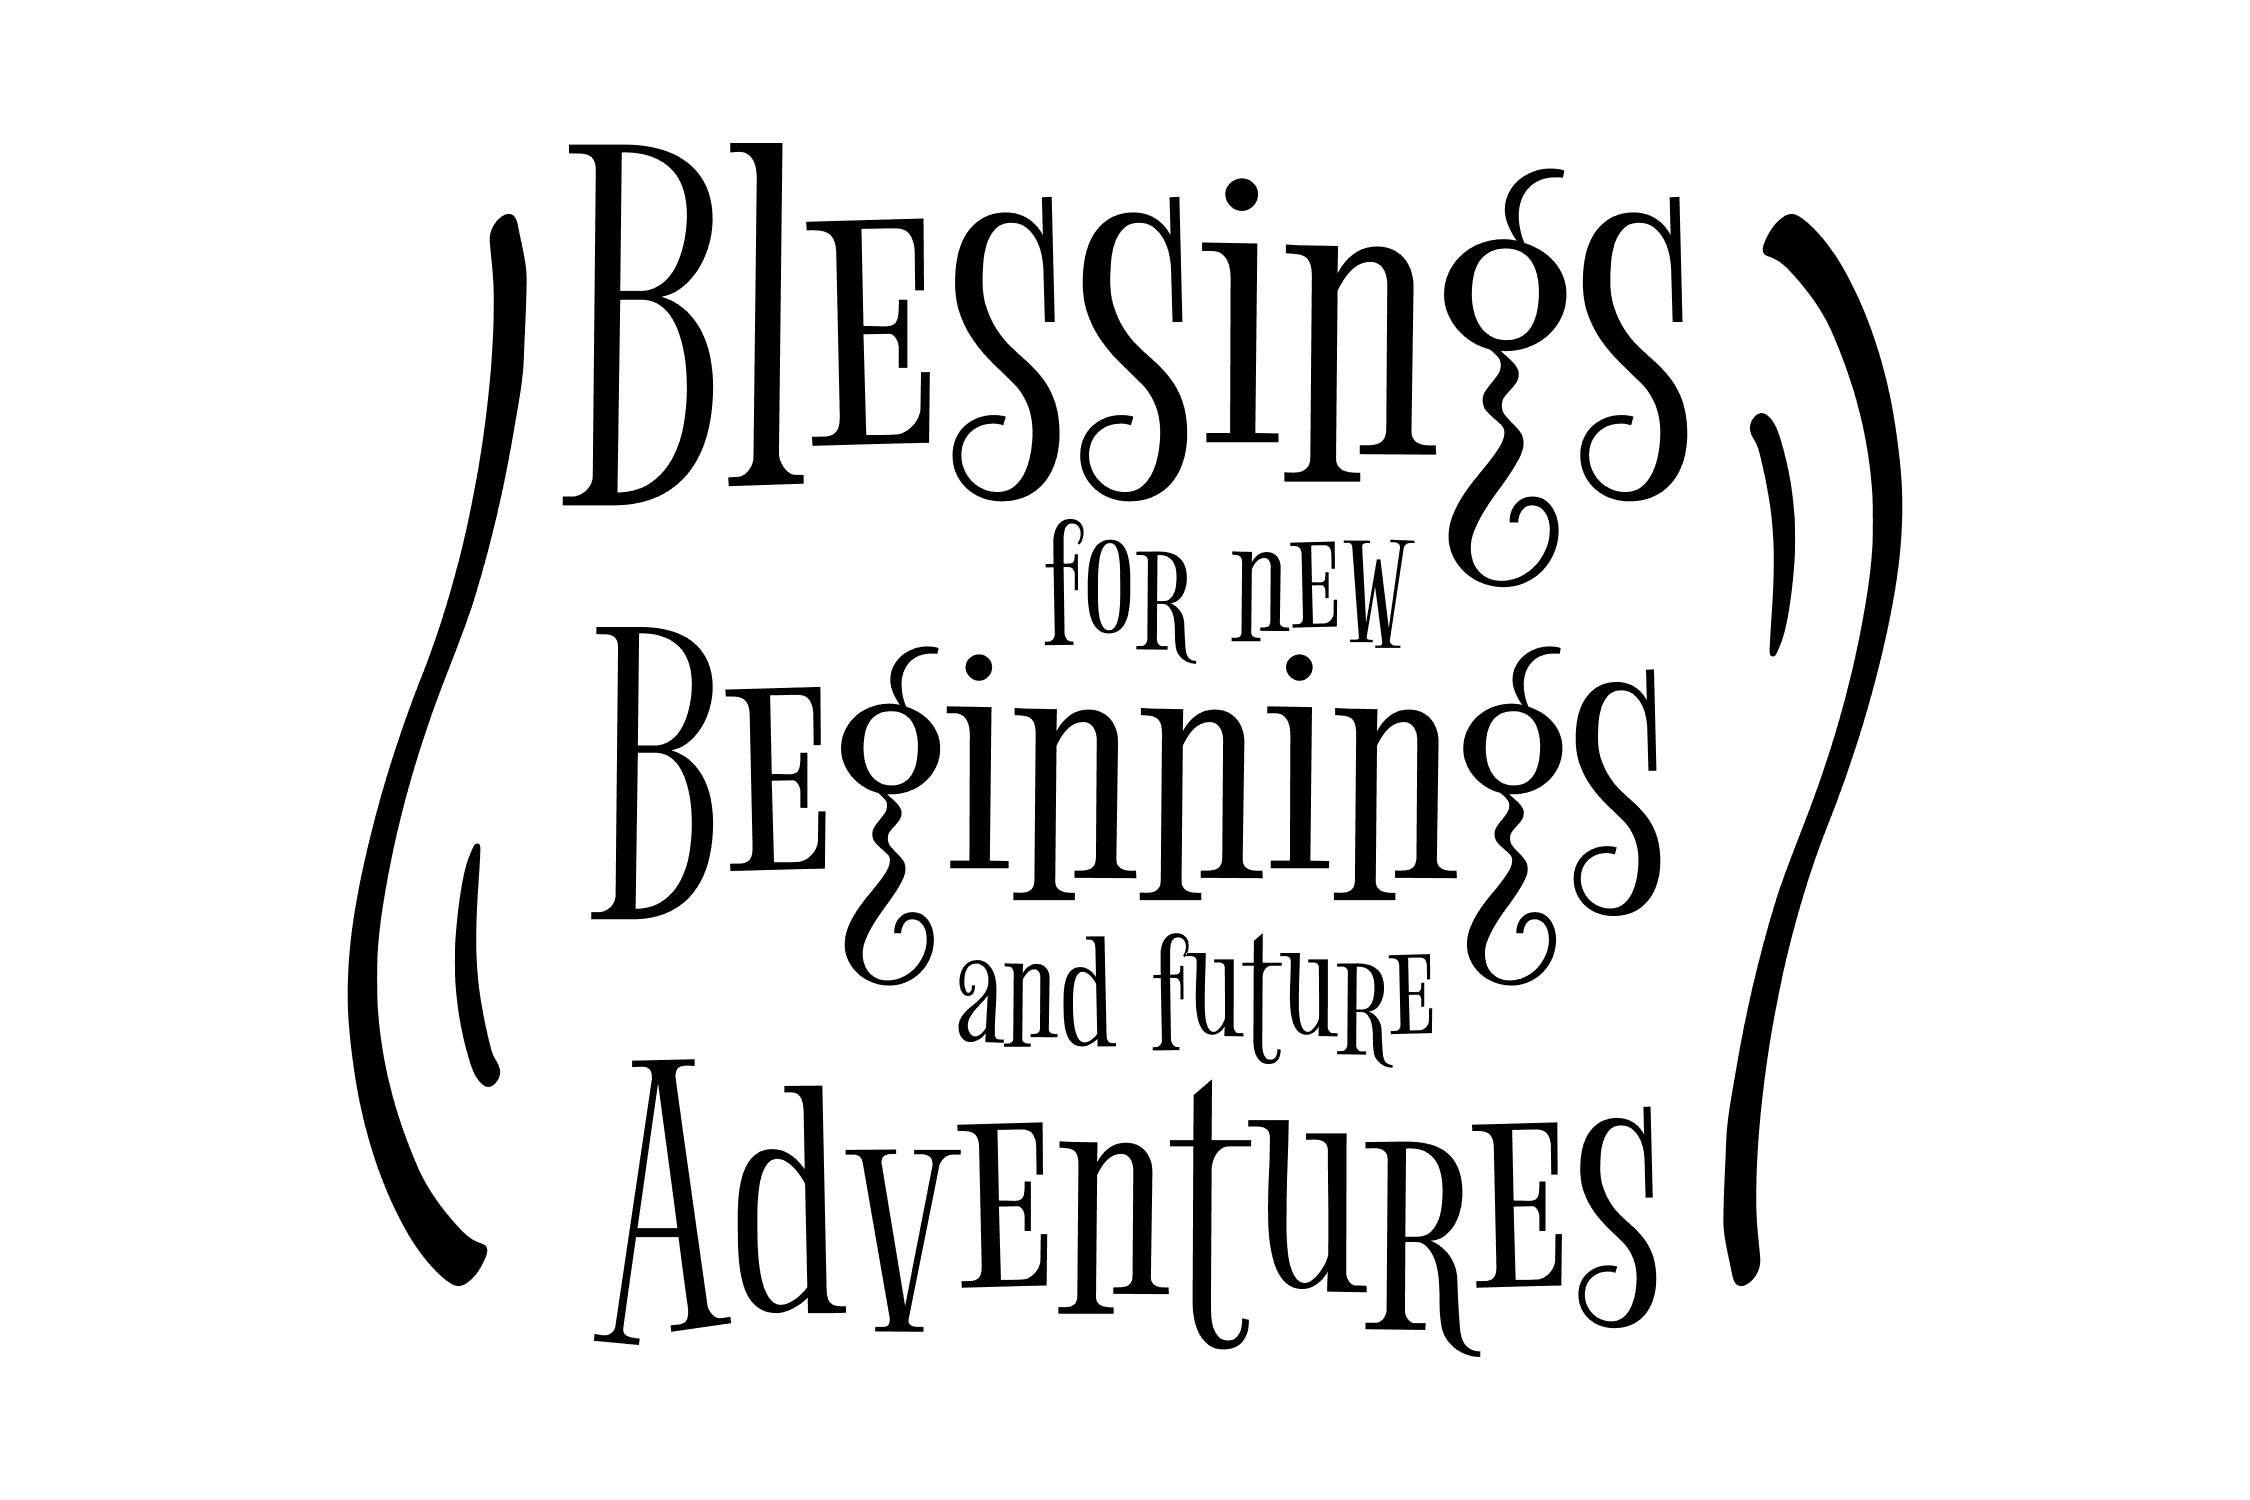 Blessings for new beginnings - SVG EPS PNG example image 3